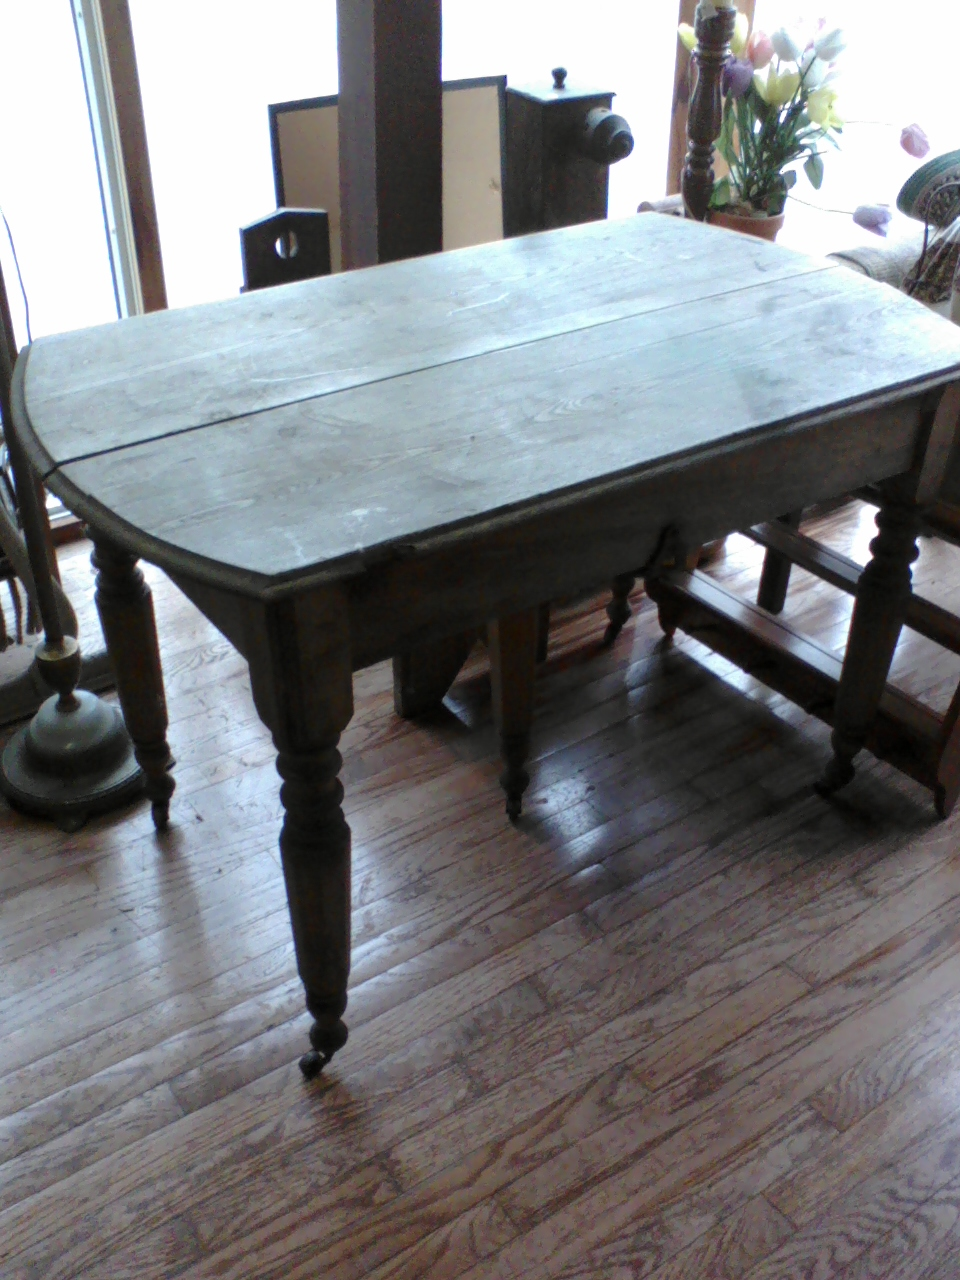 Antique Kitchen Work Tables Maple Leaves Sycamore Trees Antique Farm Table